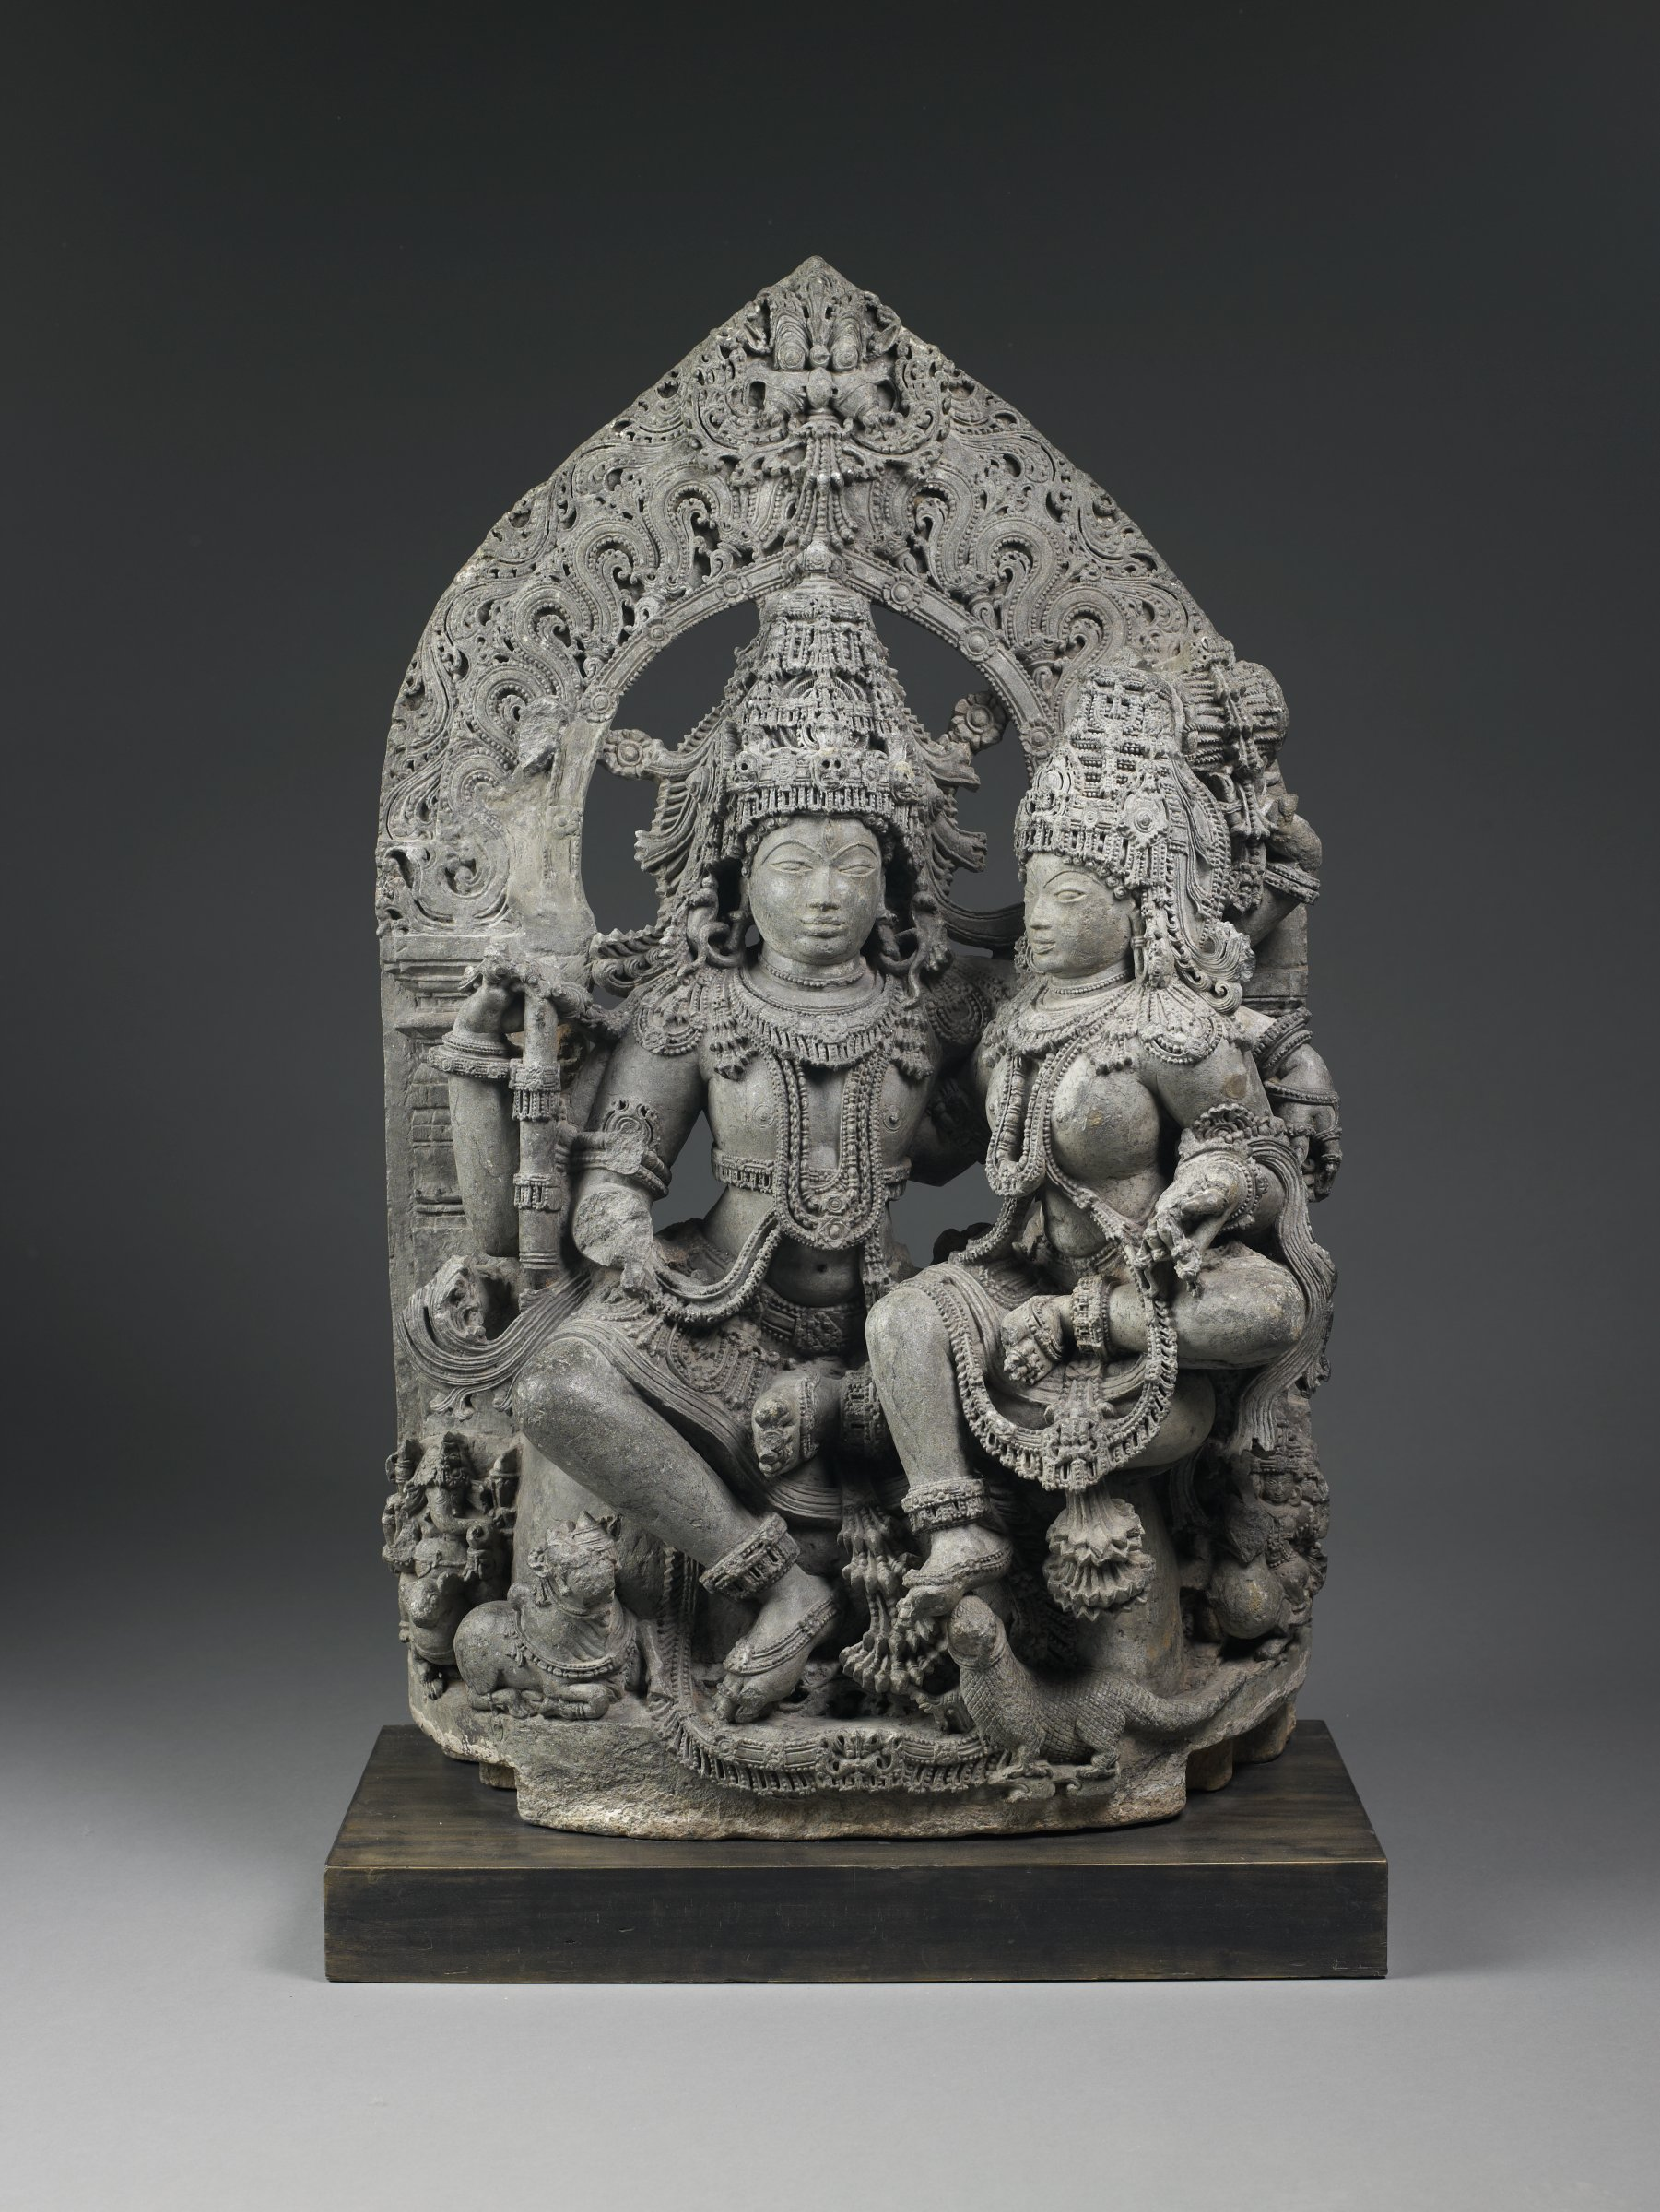 Large, highly detailed sculpture of four-armed Siva with skull-adorned diadem, holding a double-sided (damaru) drum in upper proper left hand, lower proper left arm embracing the Goddess seated upon his lap. His zebu bull is by his pendent proper right leg.  Parvati (as Gauri) with a iguana vahana as well as Ganesha riding his rat (lower left) and Kartikeya riding his peacock (lower right). Face-of-glory (kirtimukha) at mandorla's peack with waved cloud/foliate motifs.